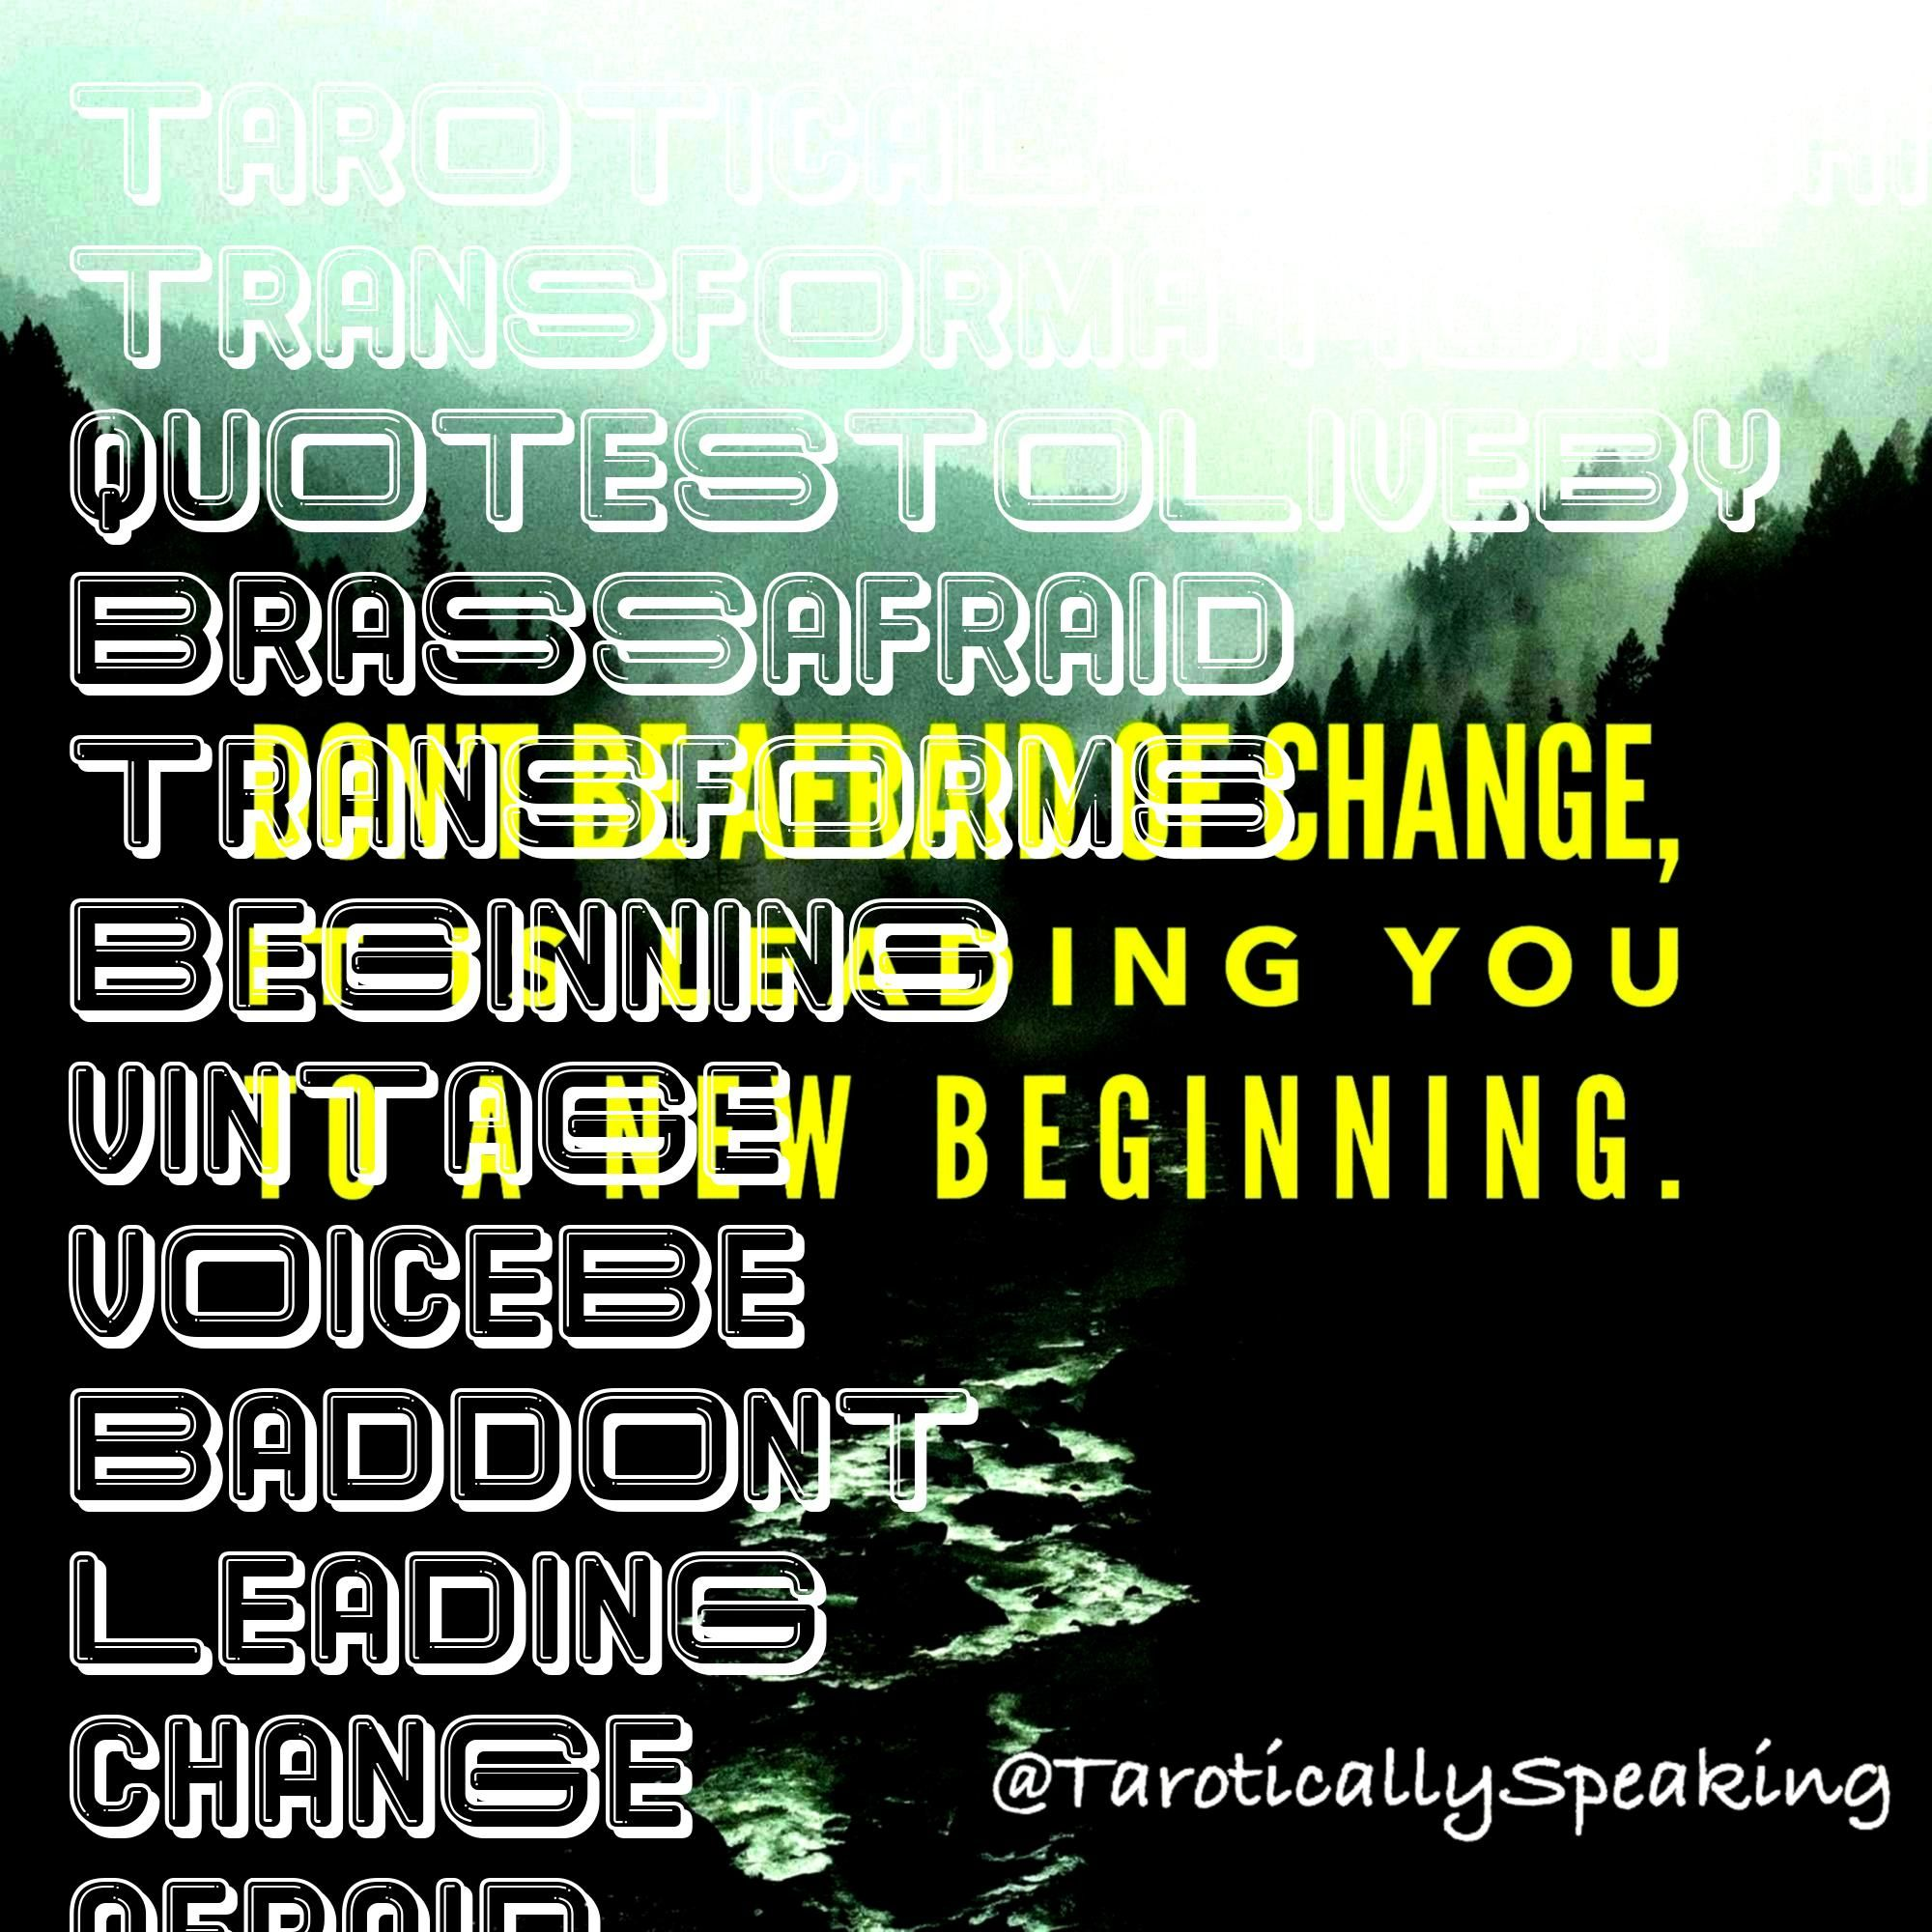 change it is leading you to a new beginning Change isnt always bad  it transforms you Allow it to happen Dont be afraid of change it is leading you to a new beginning Cha...